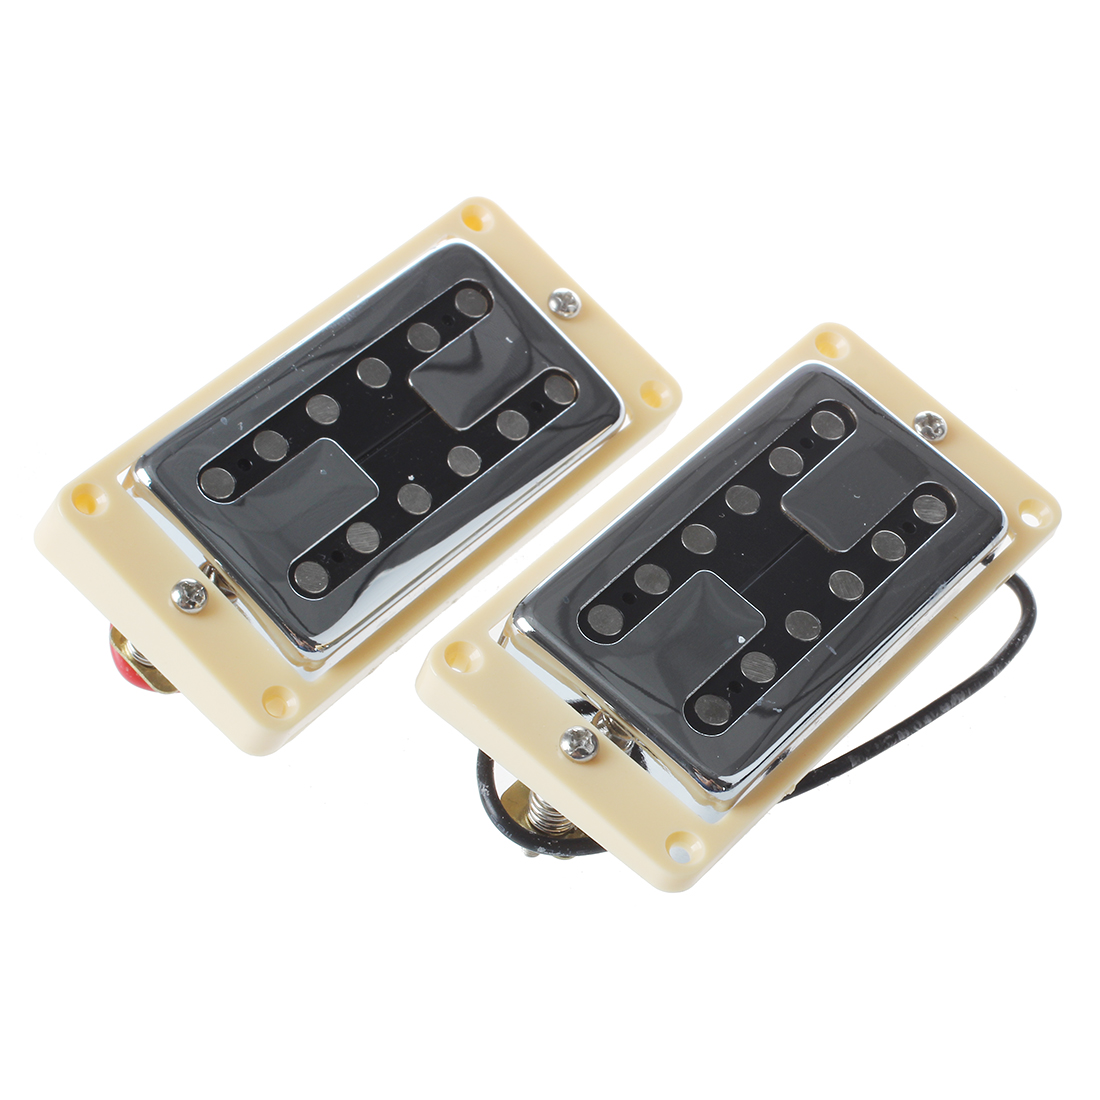 5X  Chrome Neck And Bridge Humbucker Pickups w/ Cream Frame humbucker pickup for electric guitar double coil bridge and neck pickups set replacement chrome